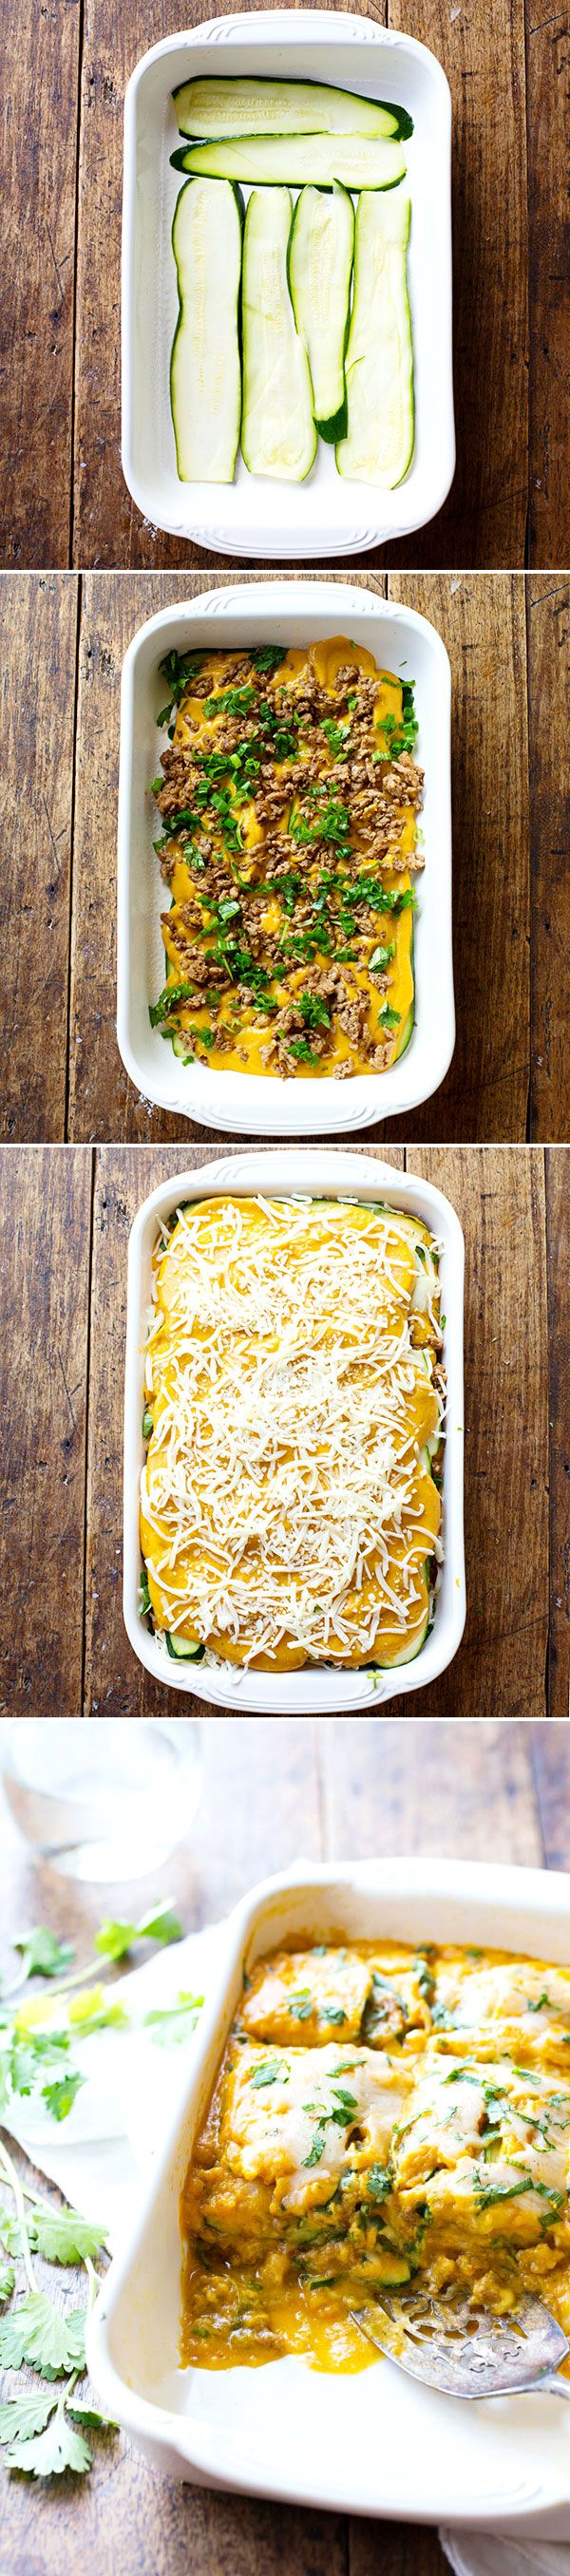 Sausage and Sweet Potato Zucchini Lasagna - simple ingredients, amazing flavor, healthy comfort food! 300 calories. | pinchofyum.com #lasagn...